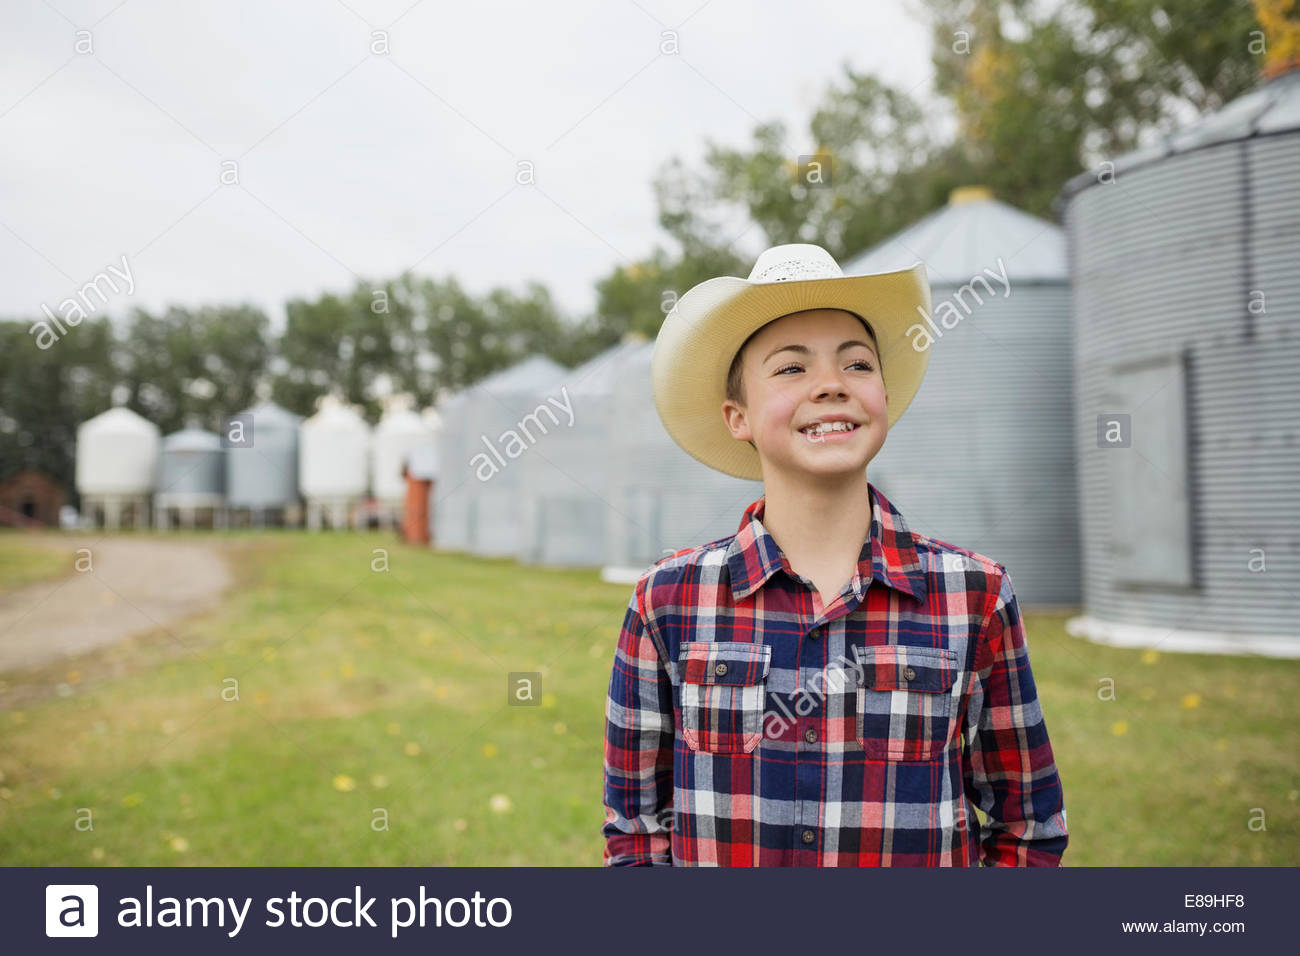 Boy in cowboy hat smiling on farm - Stock Image